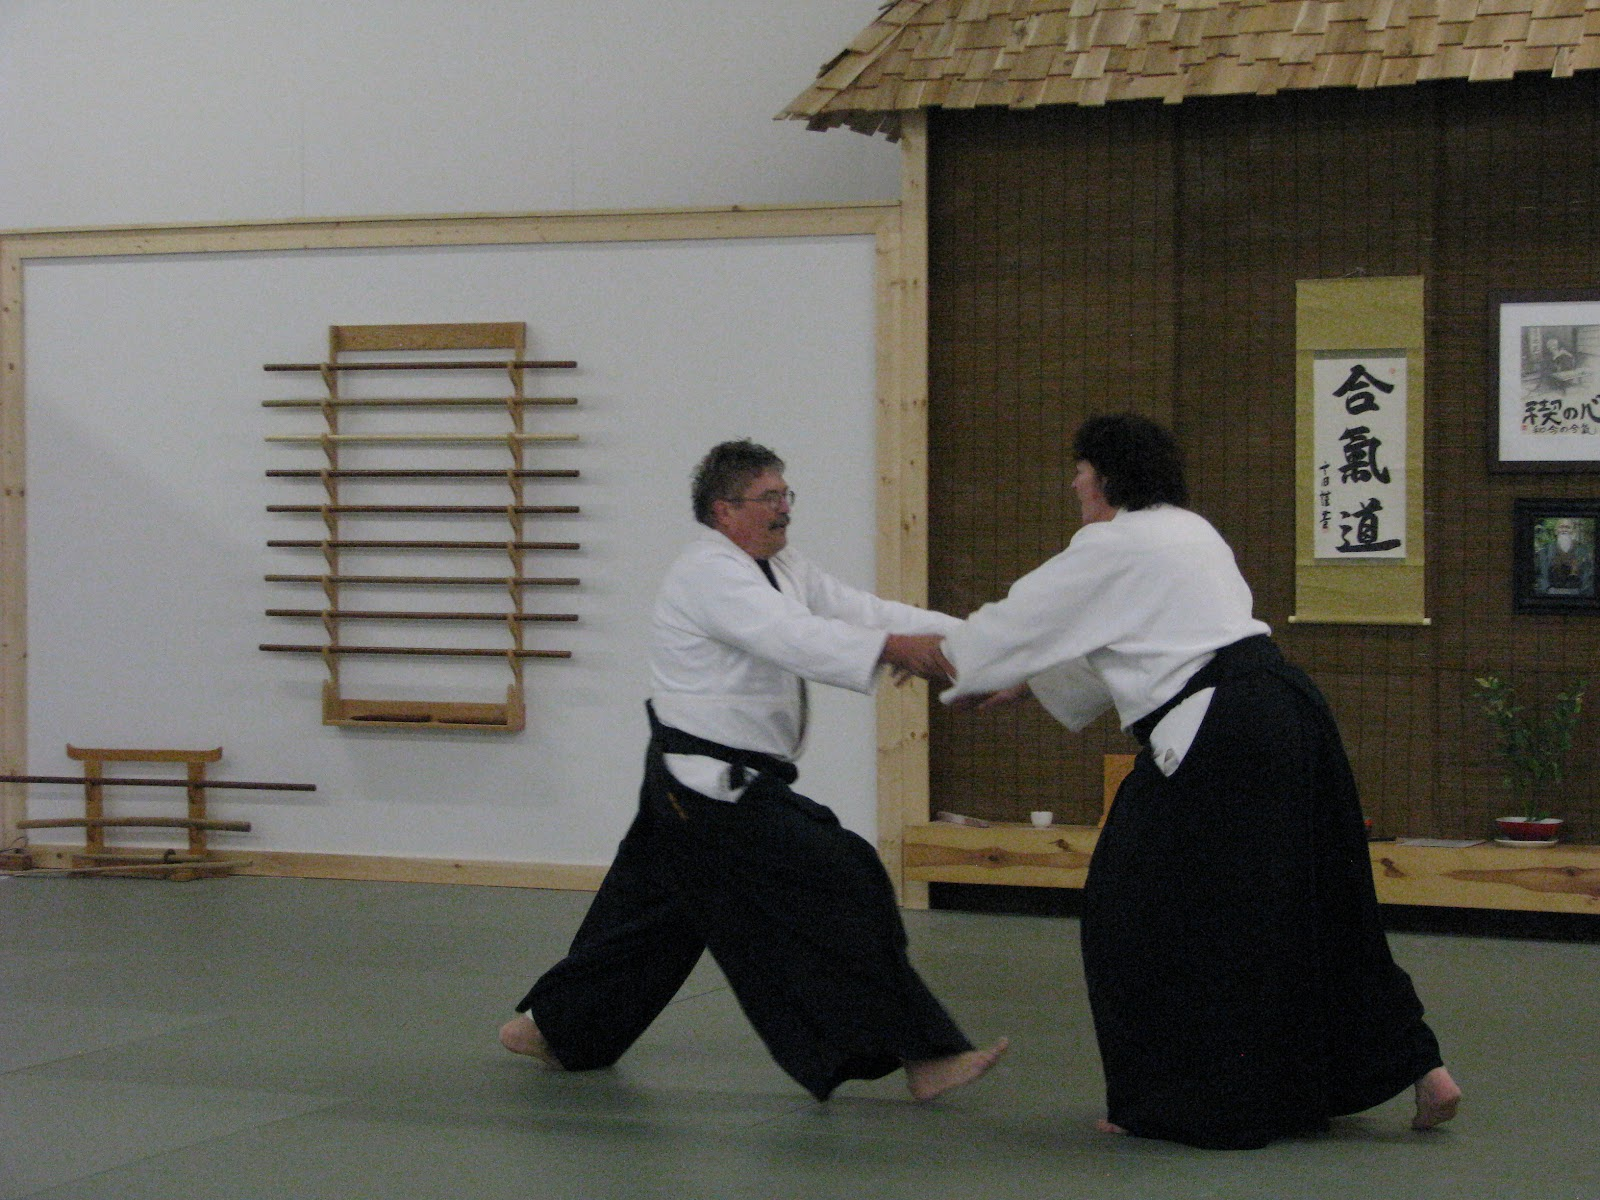 Instructors Seminar Oct 22nd 2011 C